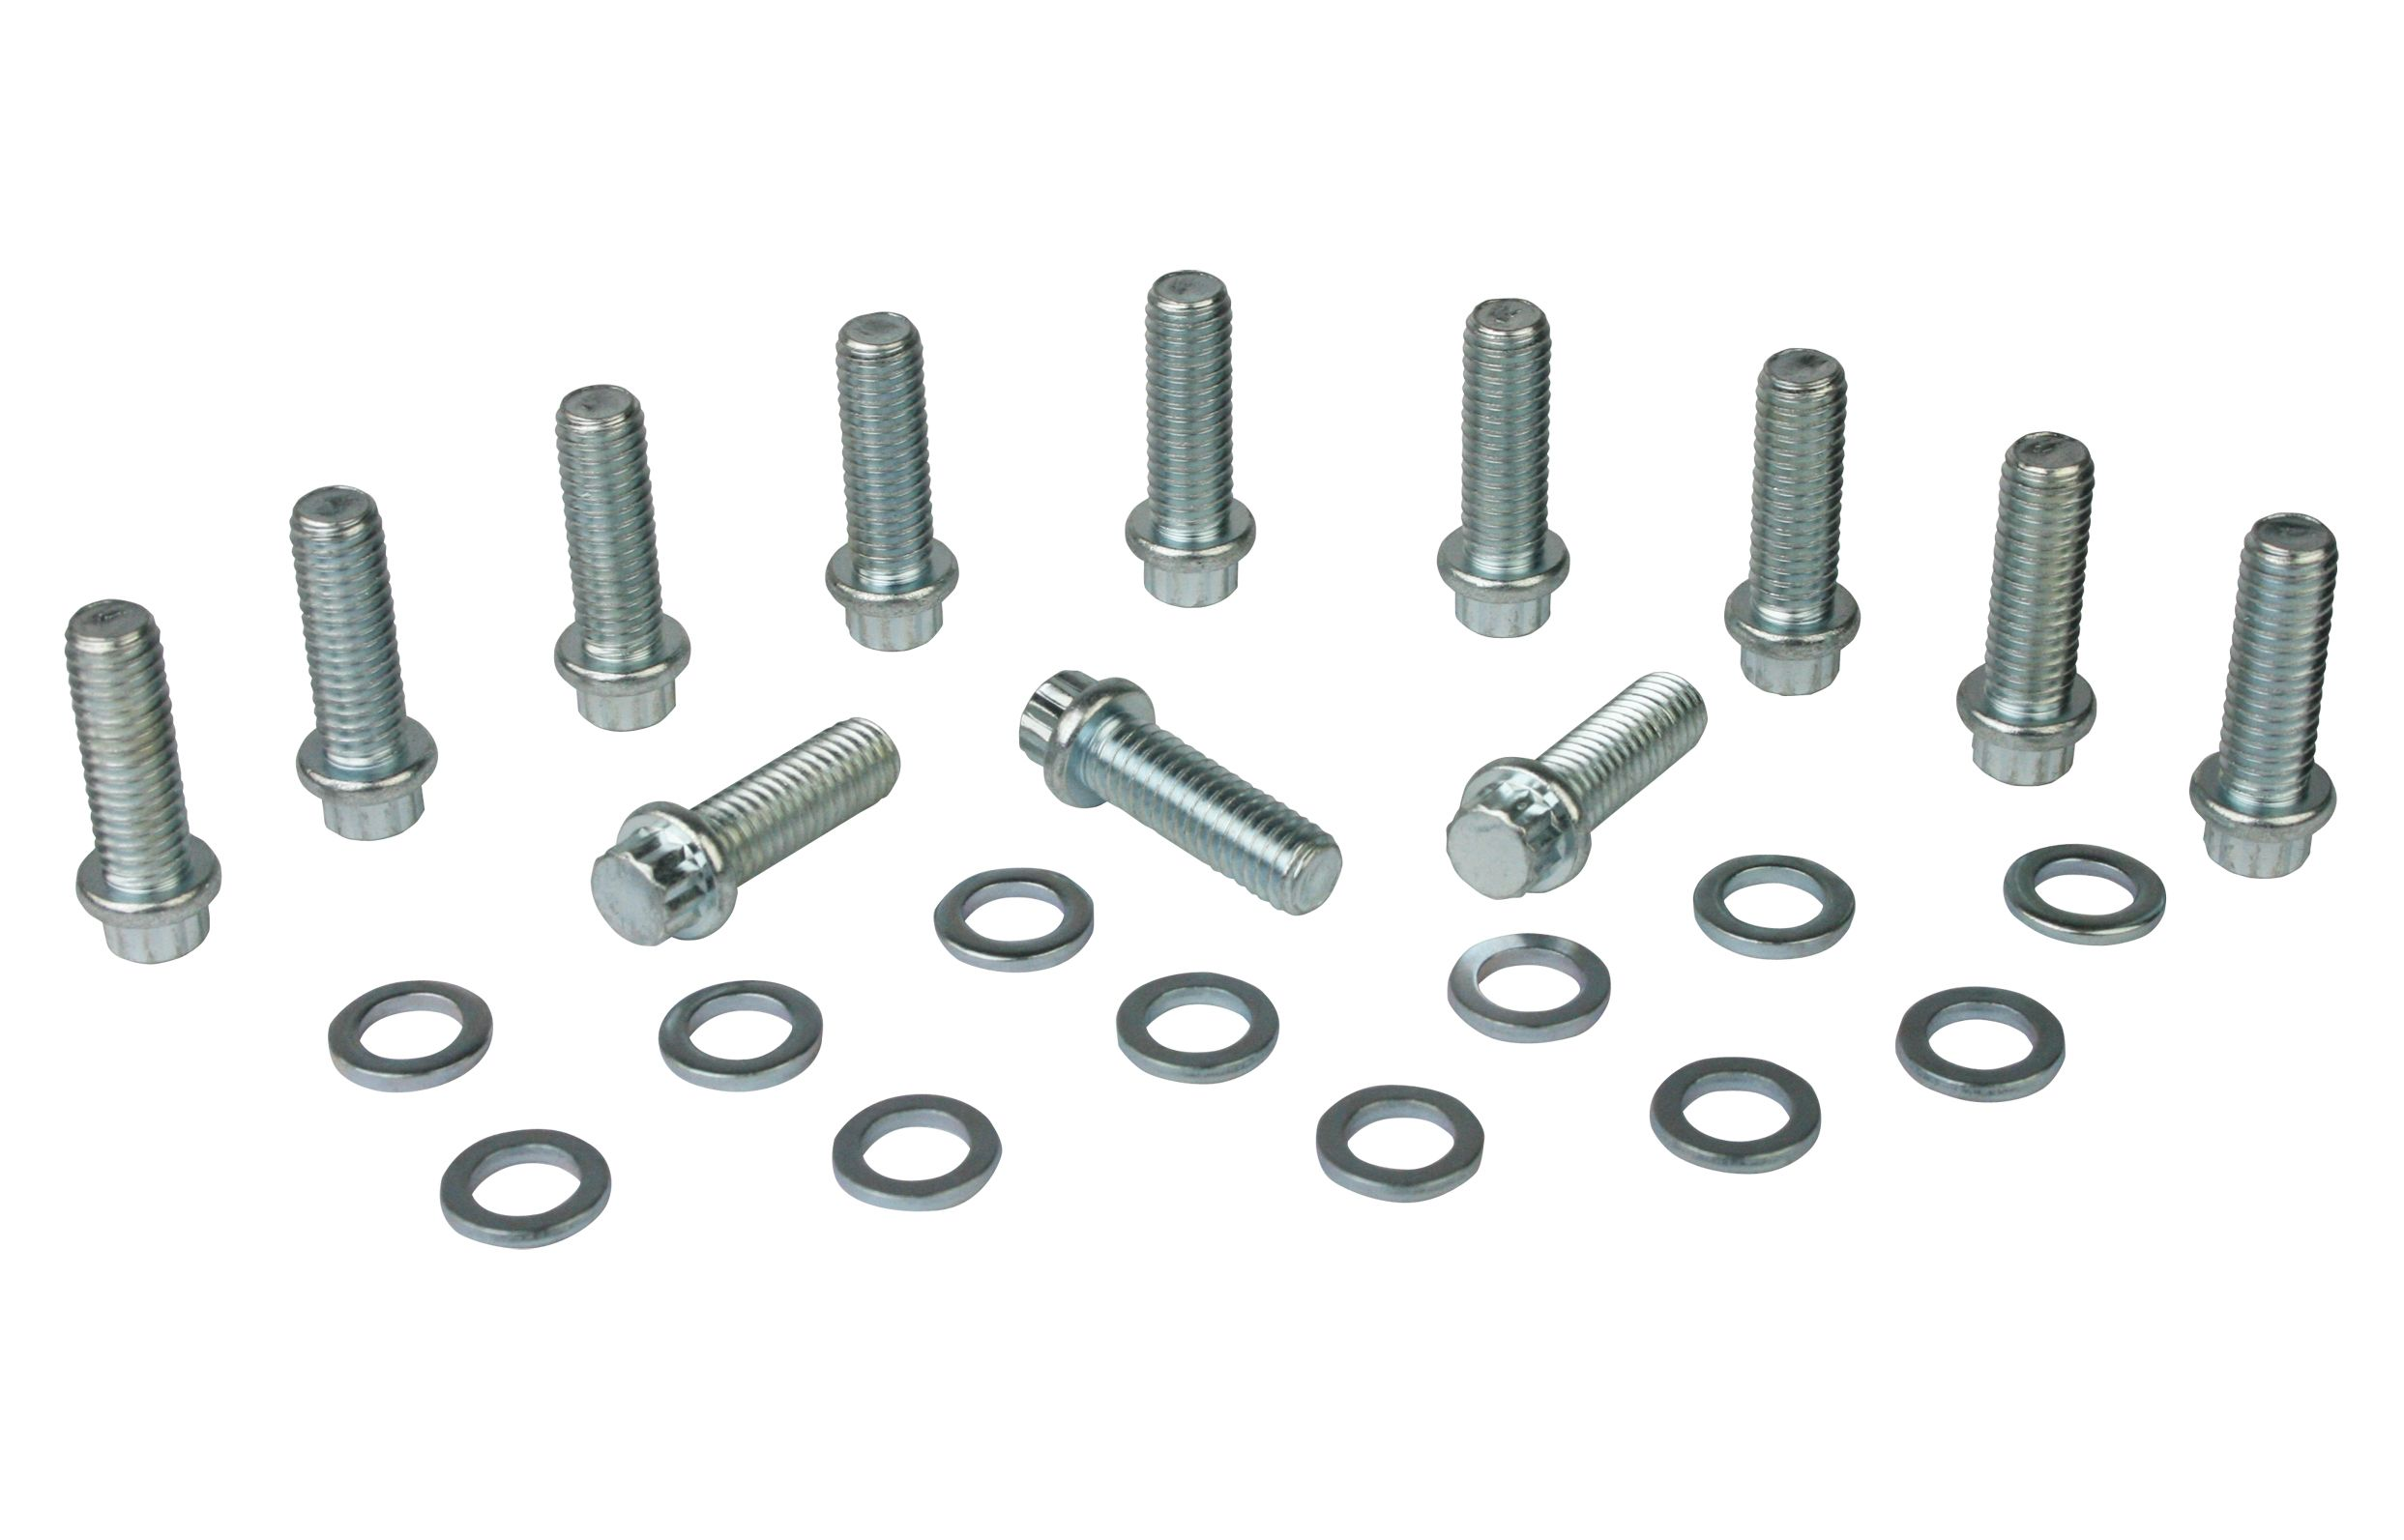 Moroso Intake Manifold Bolt Kits At Atkhp